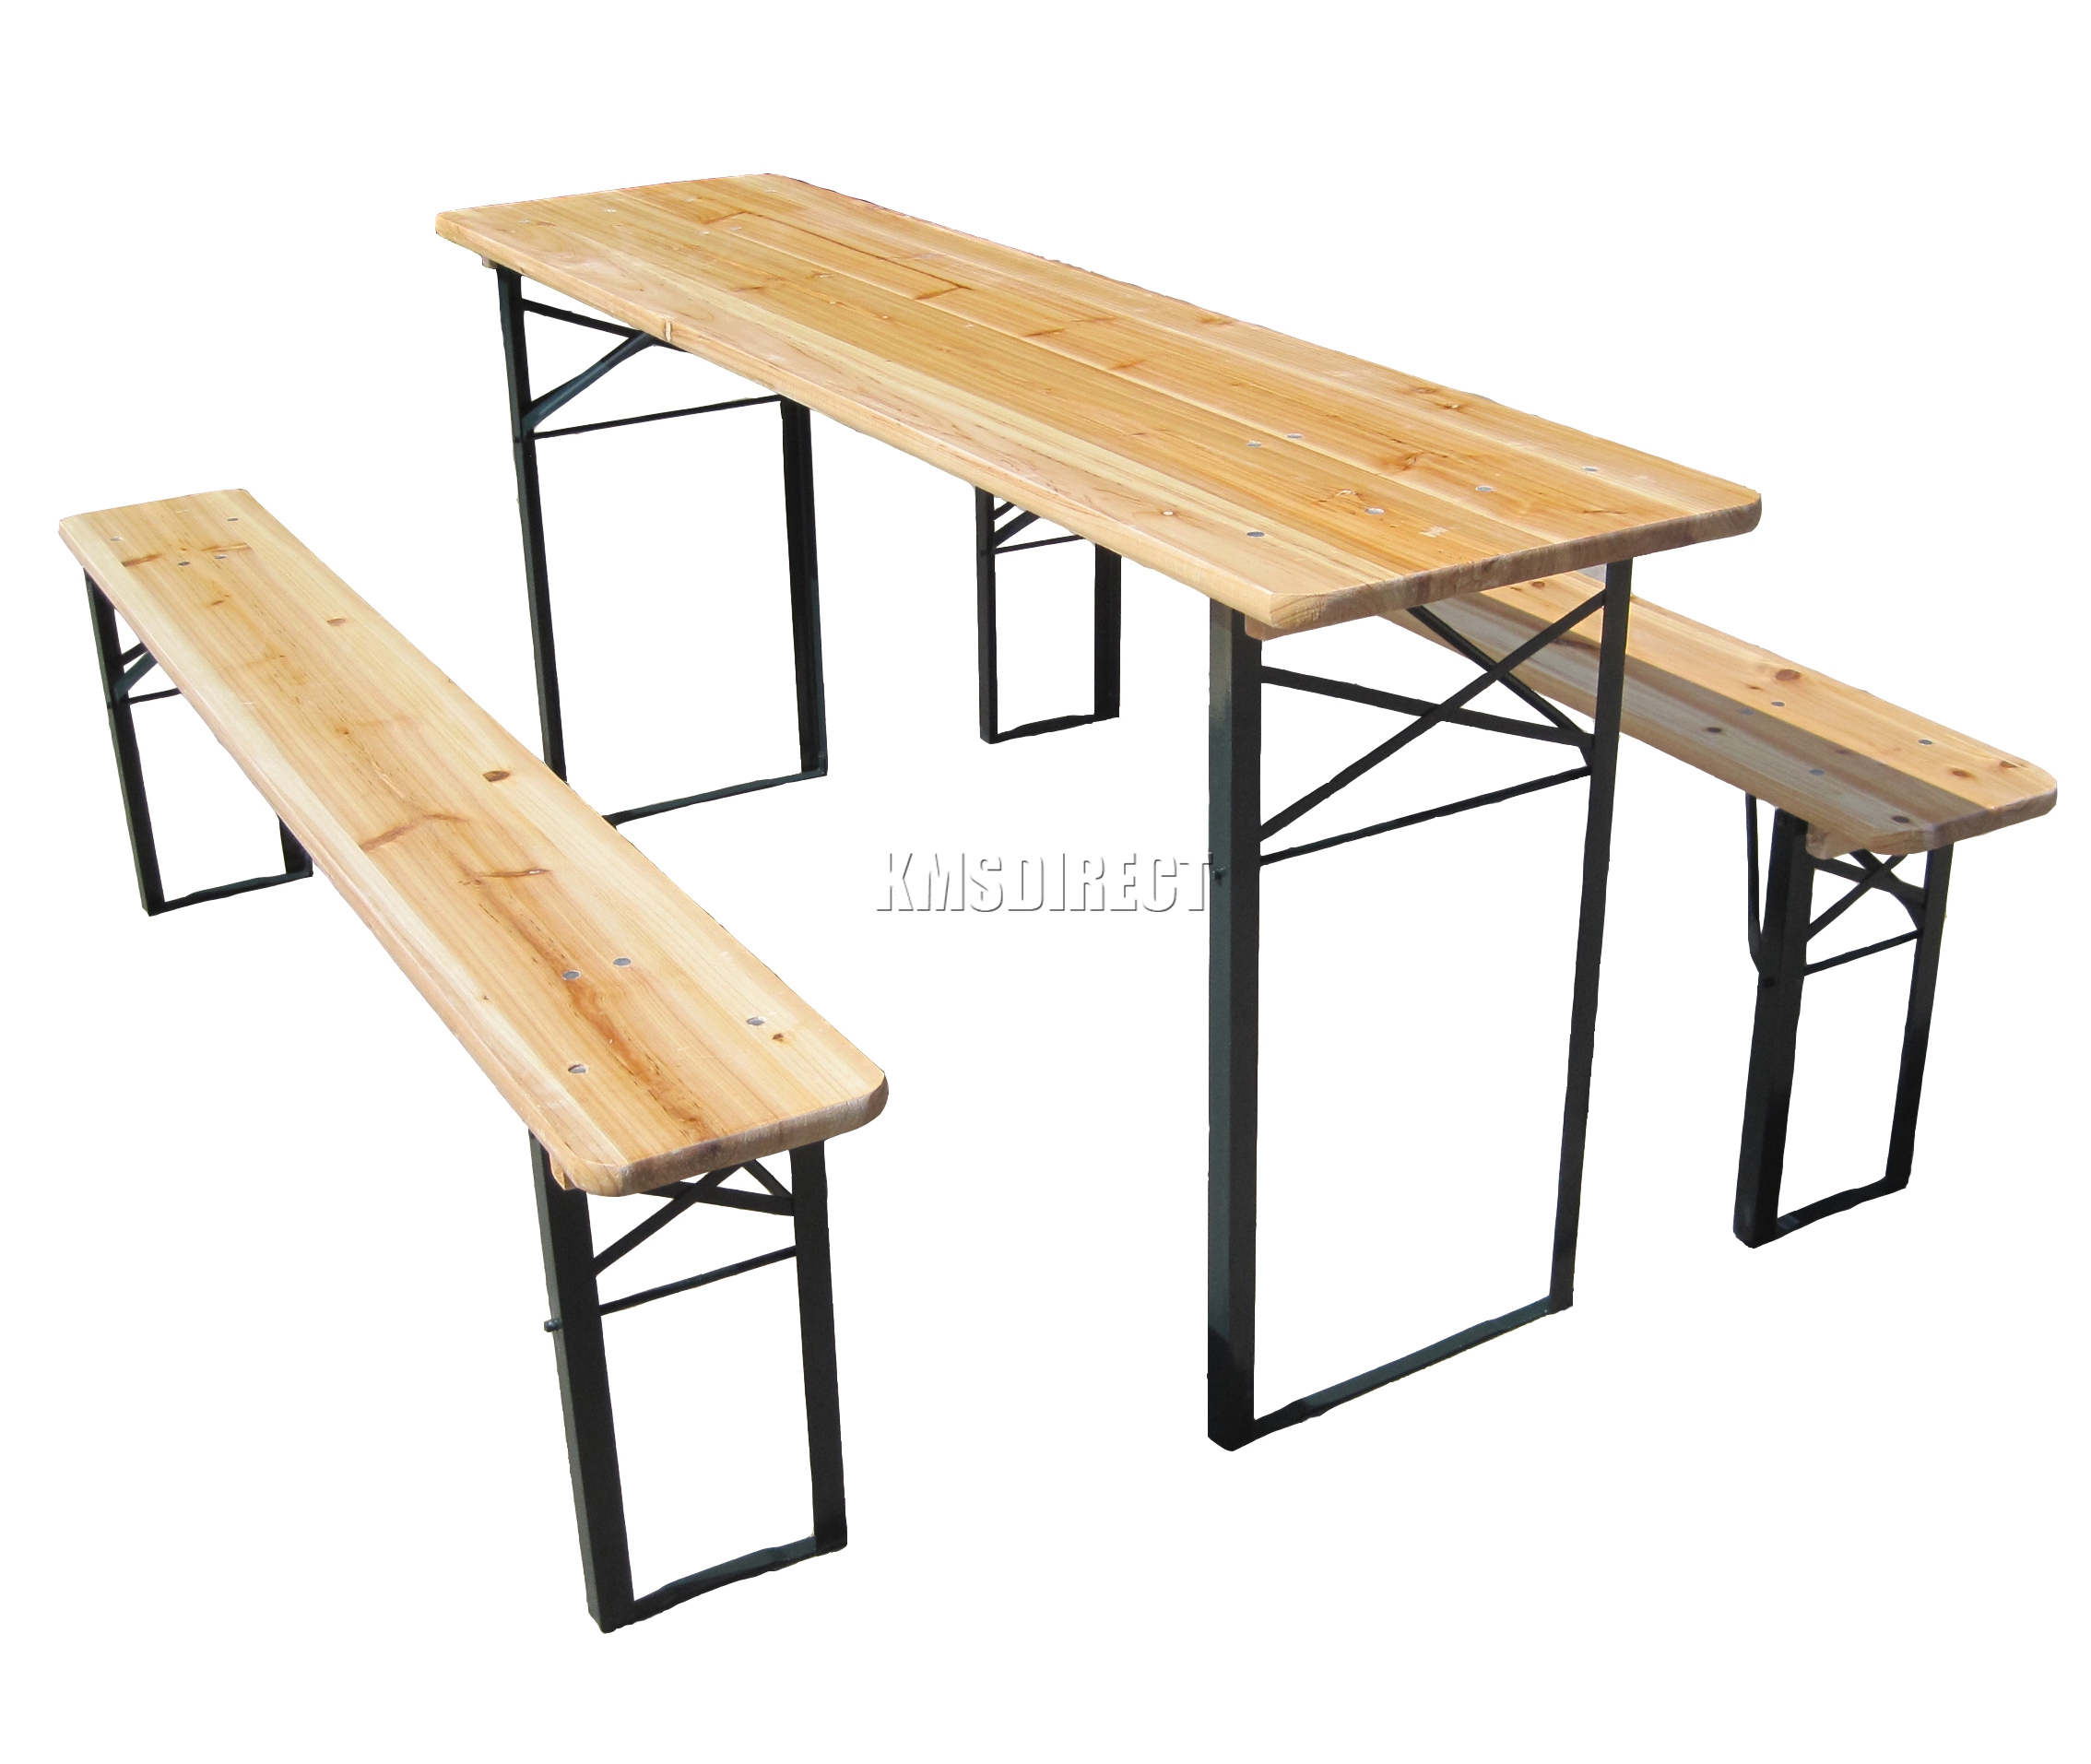 Outdoor Wooden Folding Beer Table Bench Set Trestle Garden Furniture Steel Leg